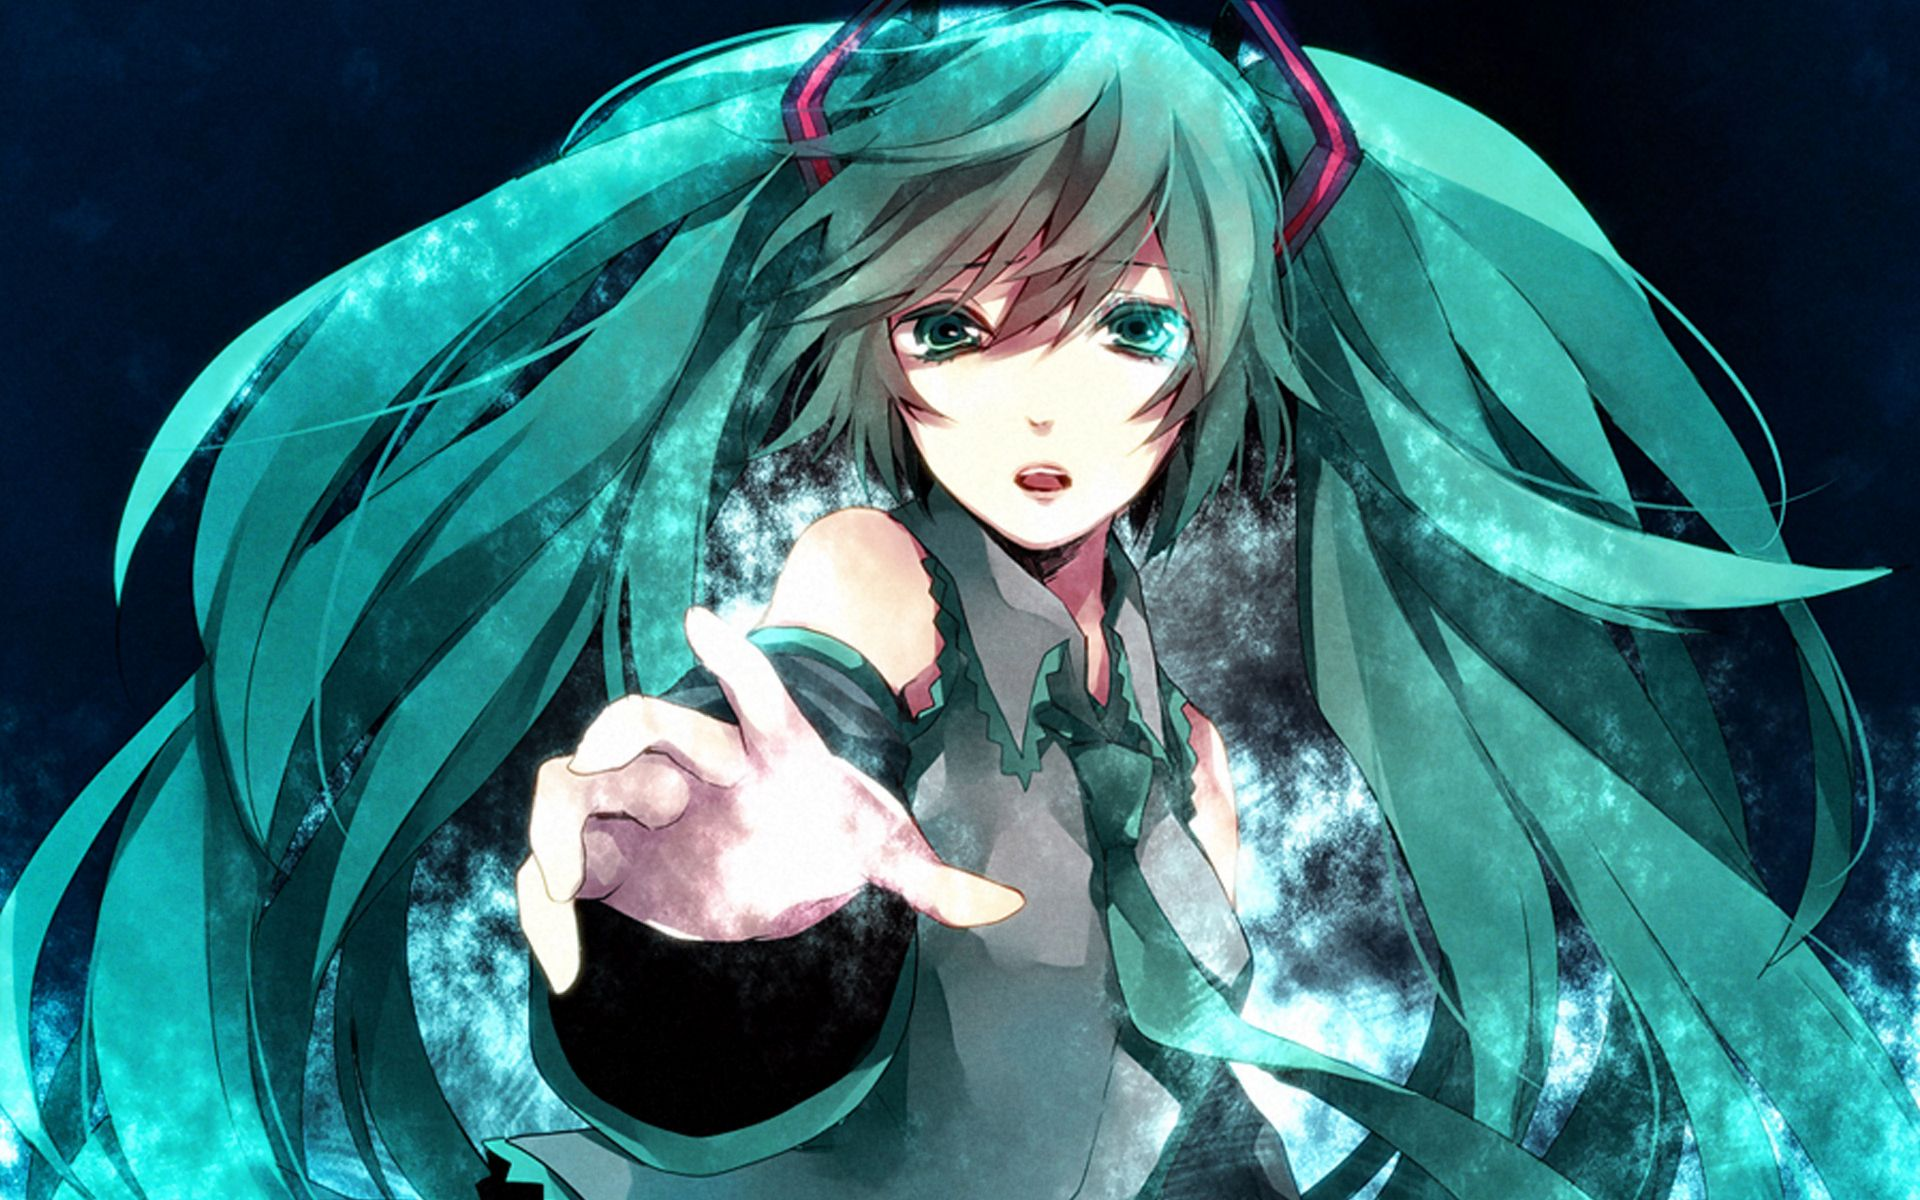 Anime Wallpapers Vocaloid Hatsune Miku HD 4K Download For Mobile iPhone & PC